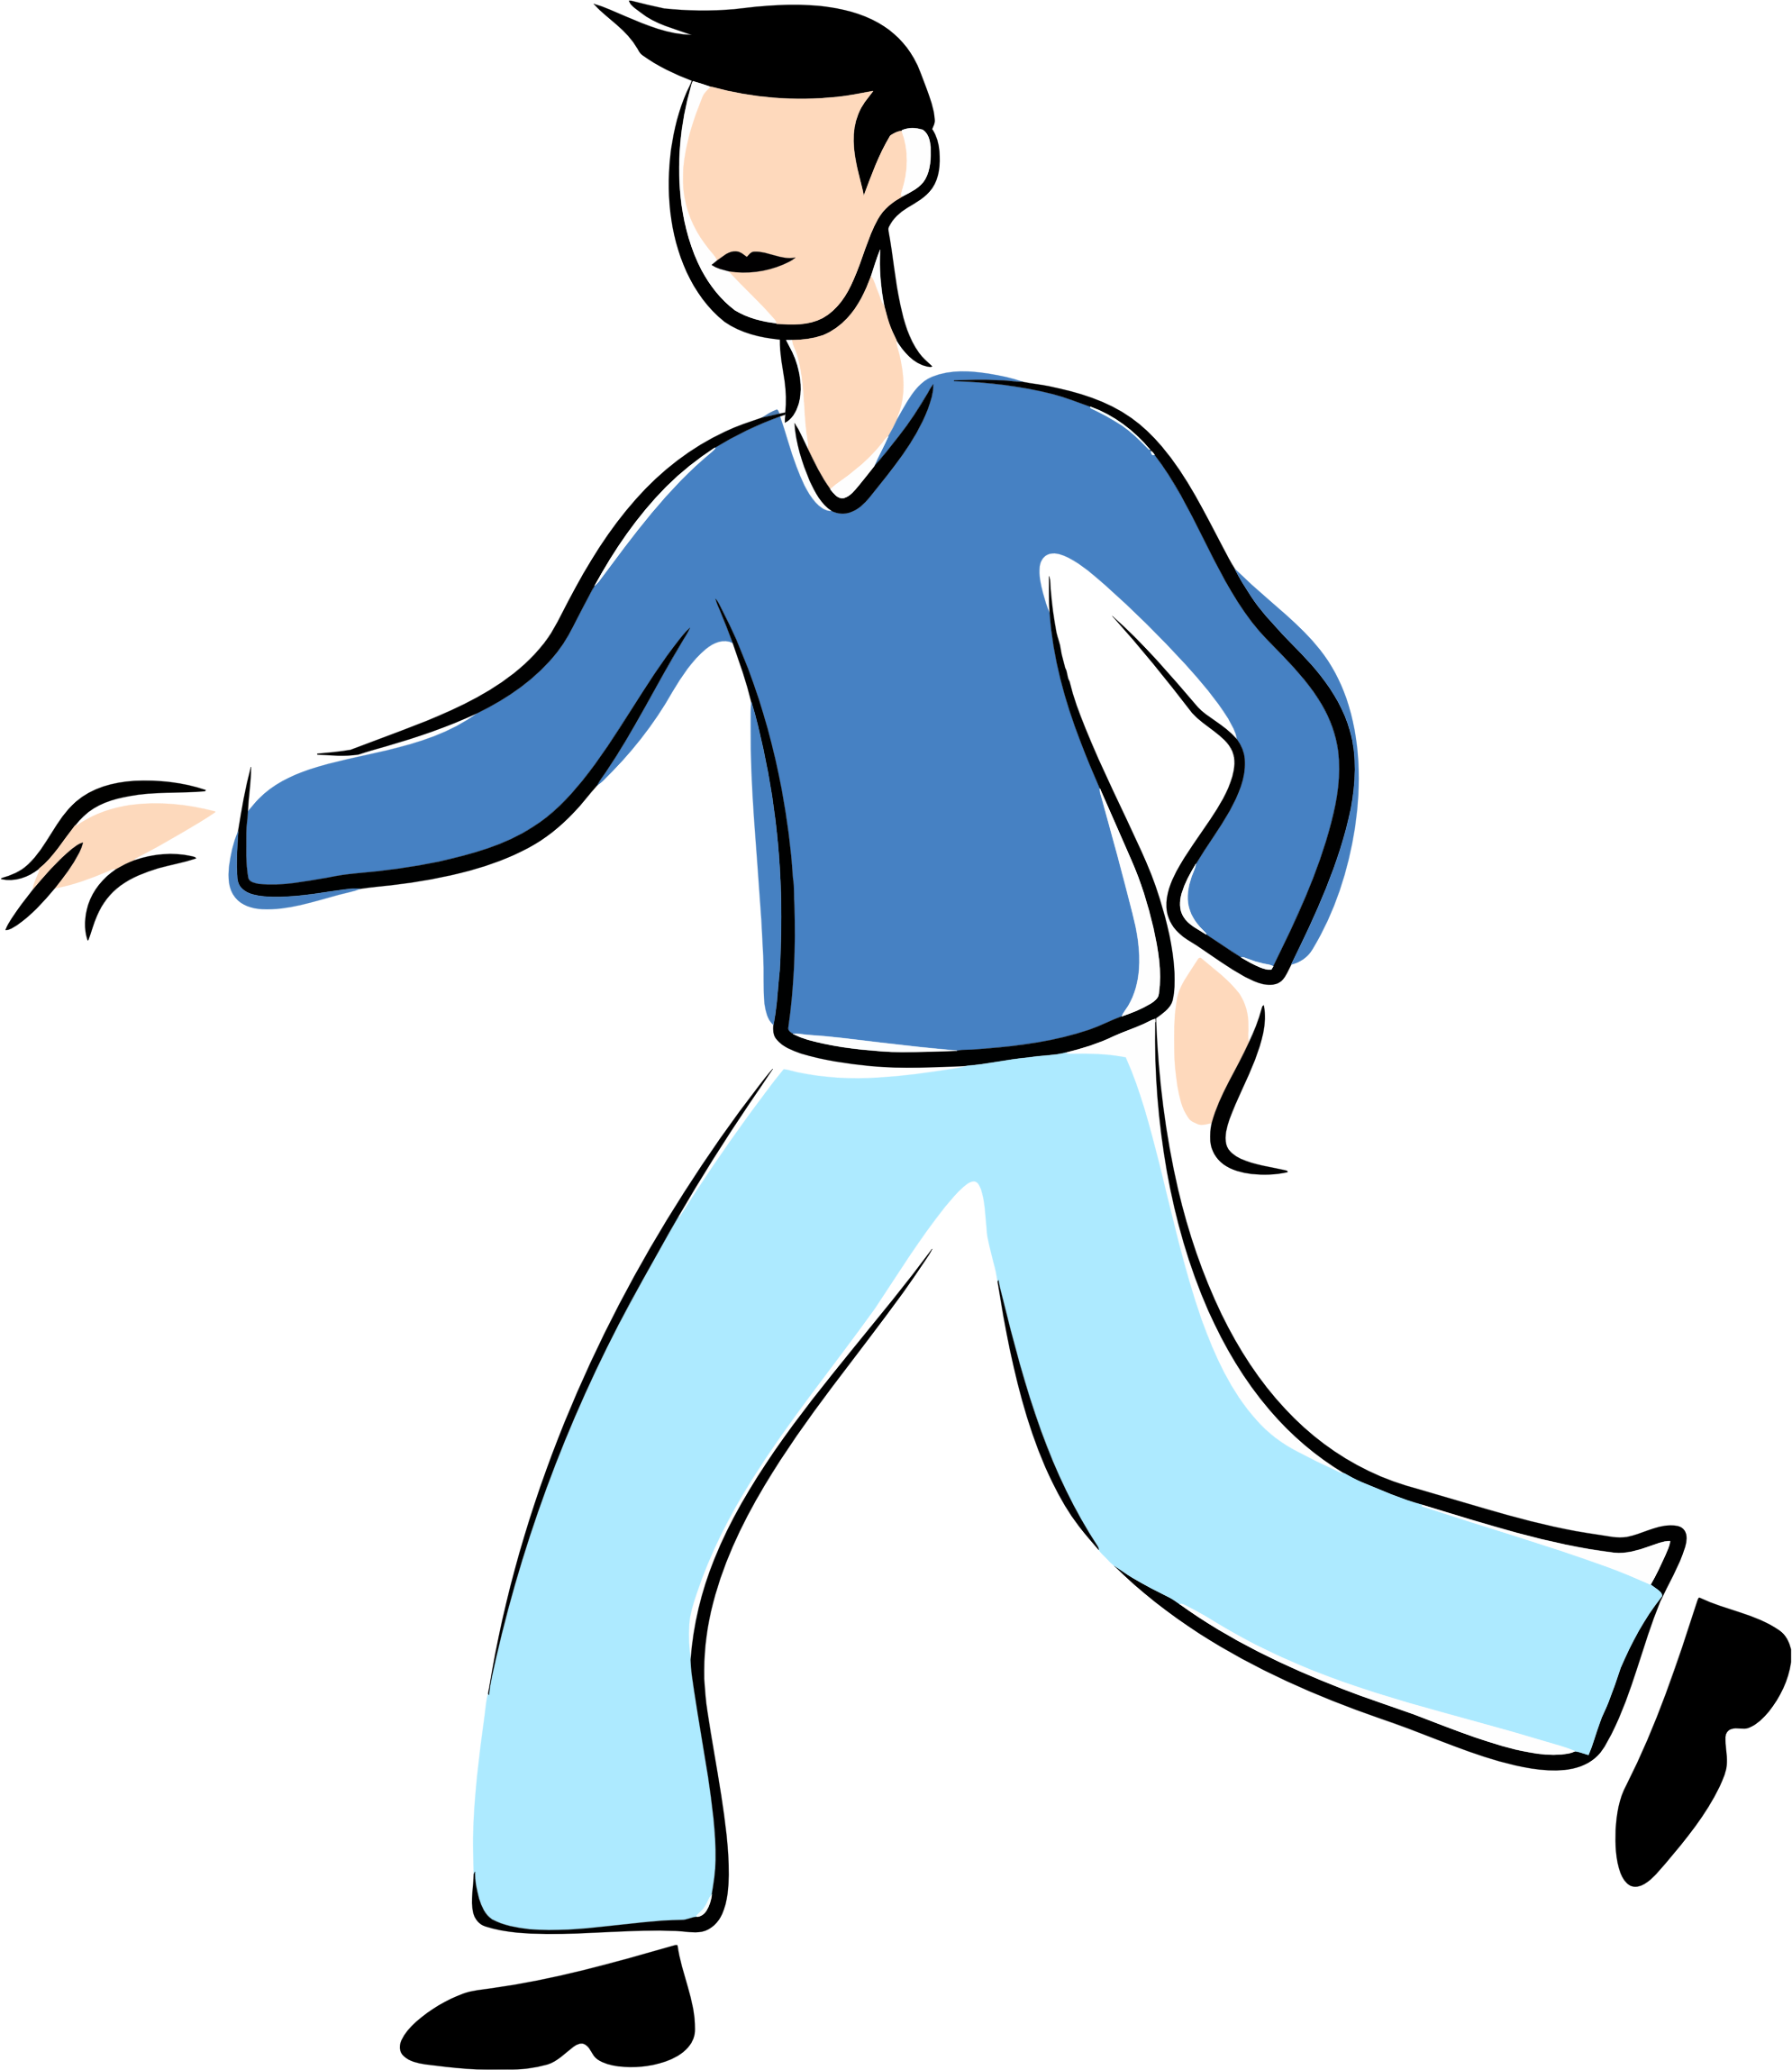 png library download Man walking clipart.  collection of high